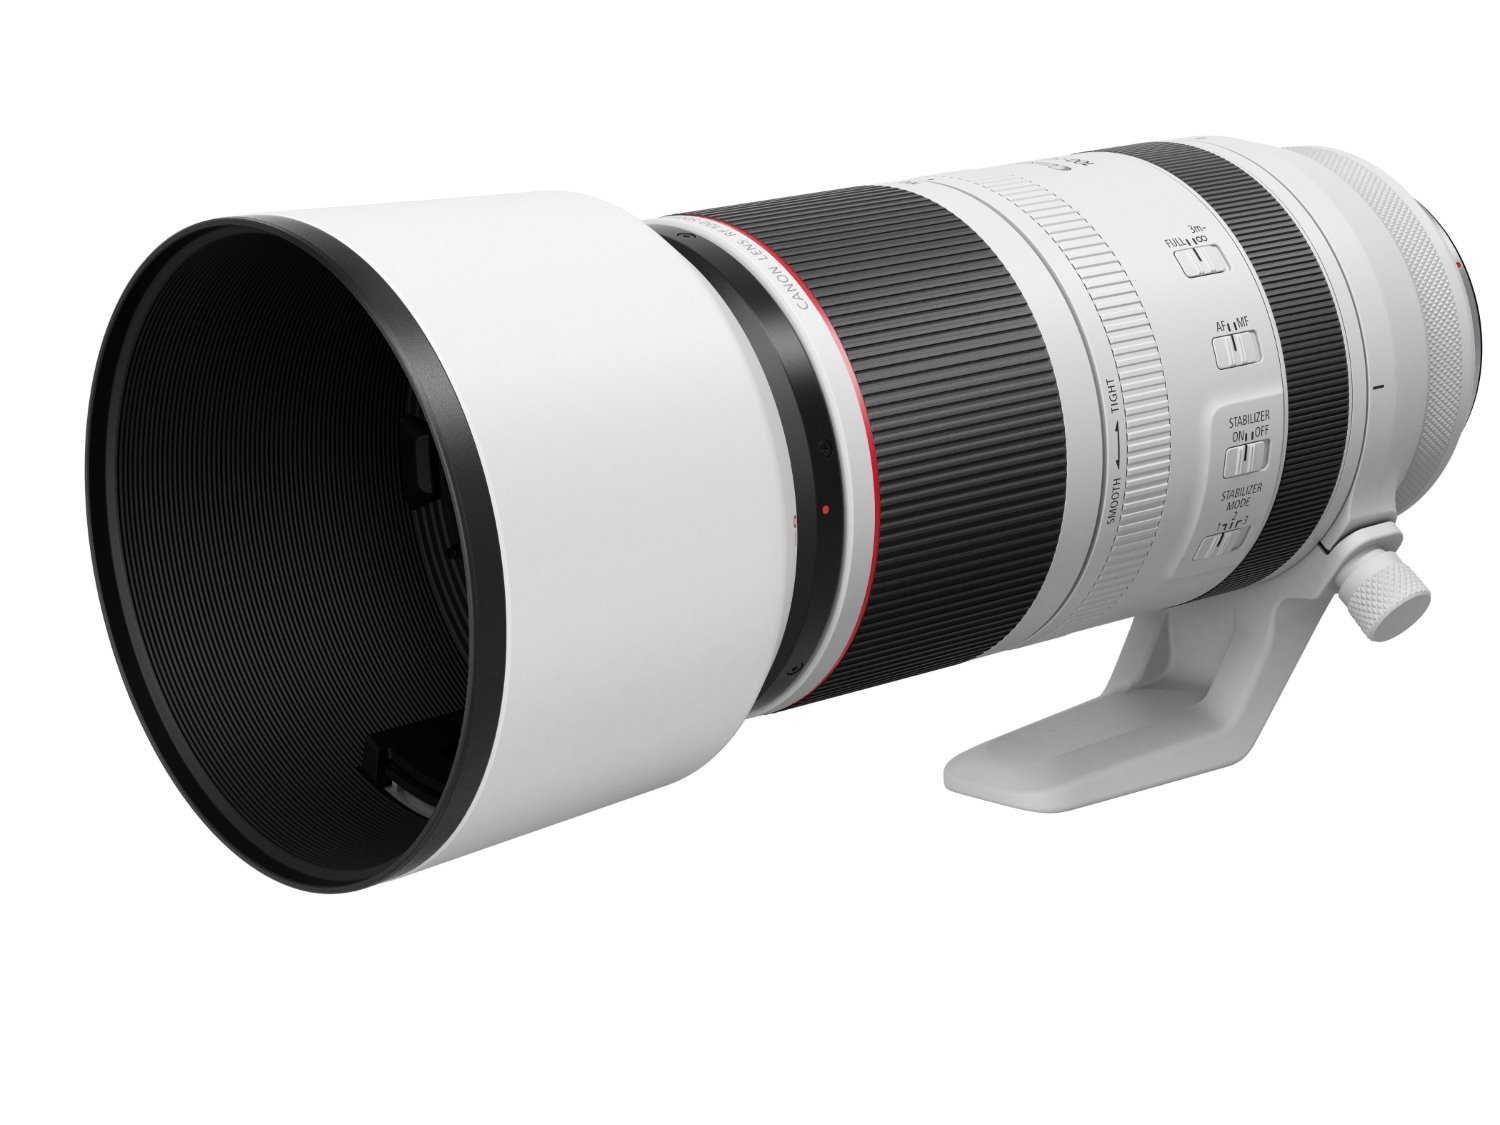 super-telephoto zoom must-have camera lens